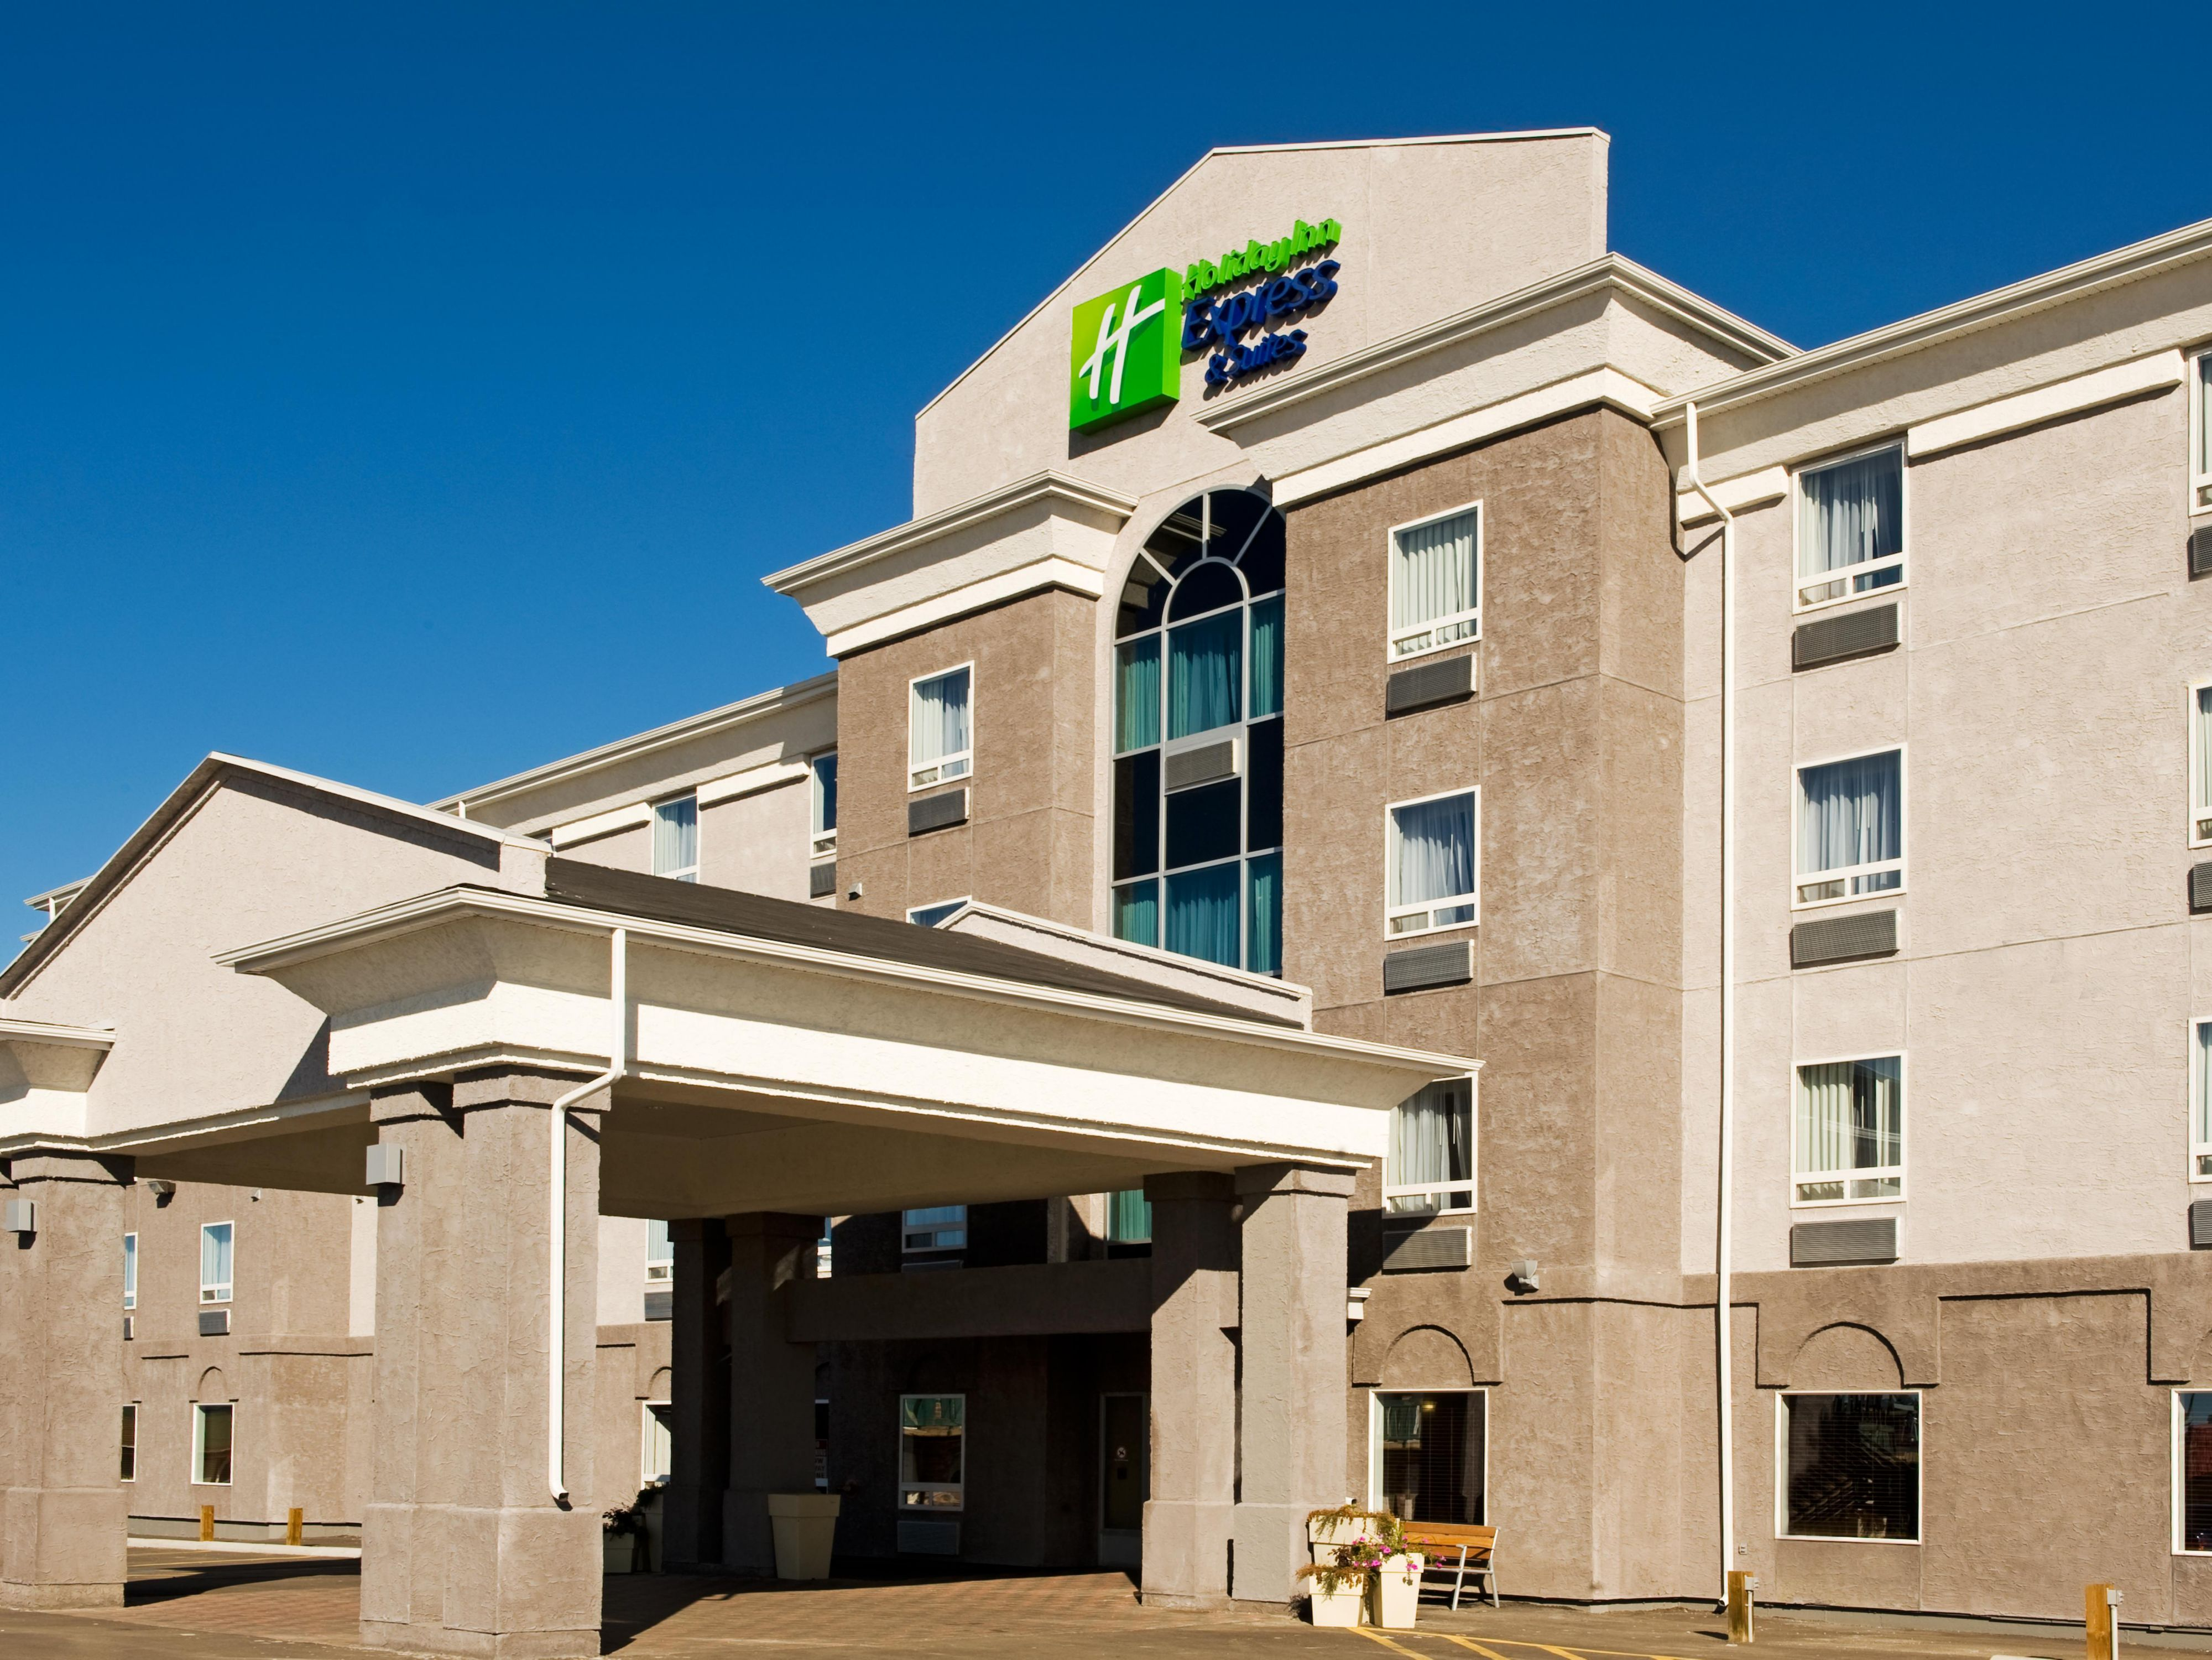 express inn comfort comforter ihg hoteldetail wi tupelo hotels en hotel and by holiday suites us tupsd holidayinnexpress rhinelander